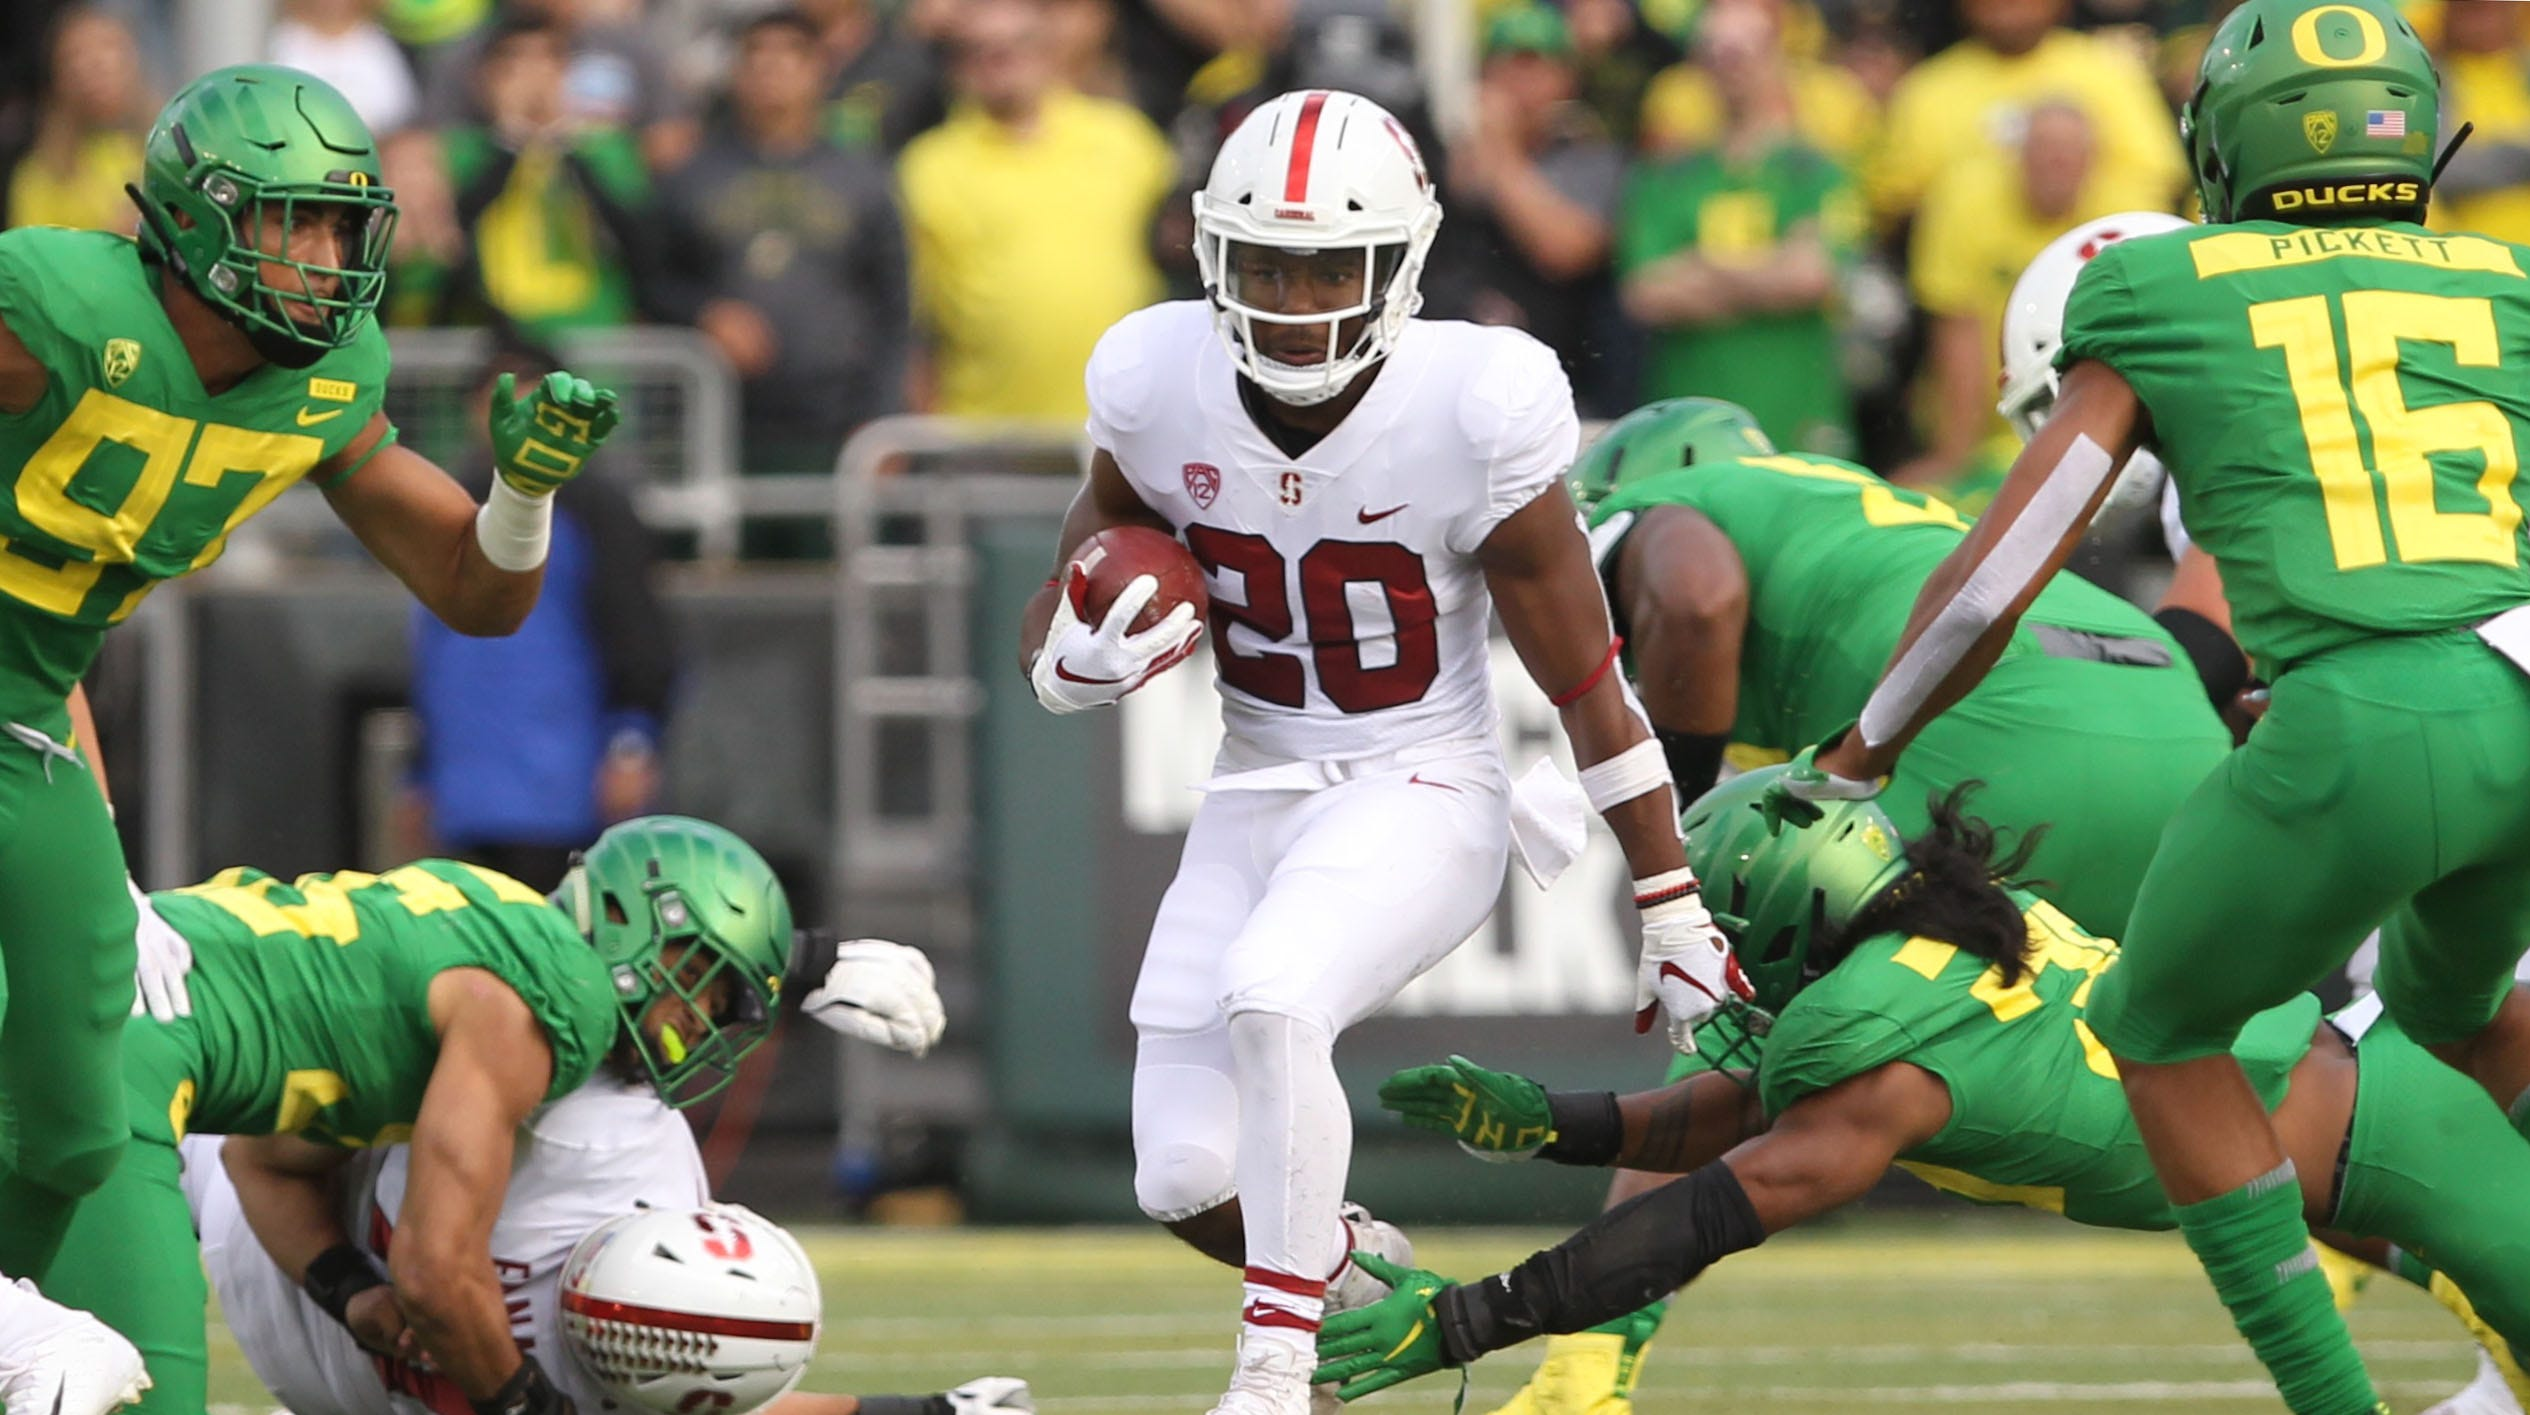 Sep 22, 2018; Eugene, OR, USA; Stanford Cardinal running back Bryce Love (20) runs  against the Oregon Ducks in the first half at Autzen Stadium. Mandatory Credit: Jaime Valdez-USA TODAY Sports